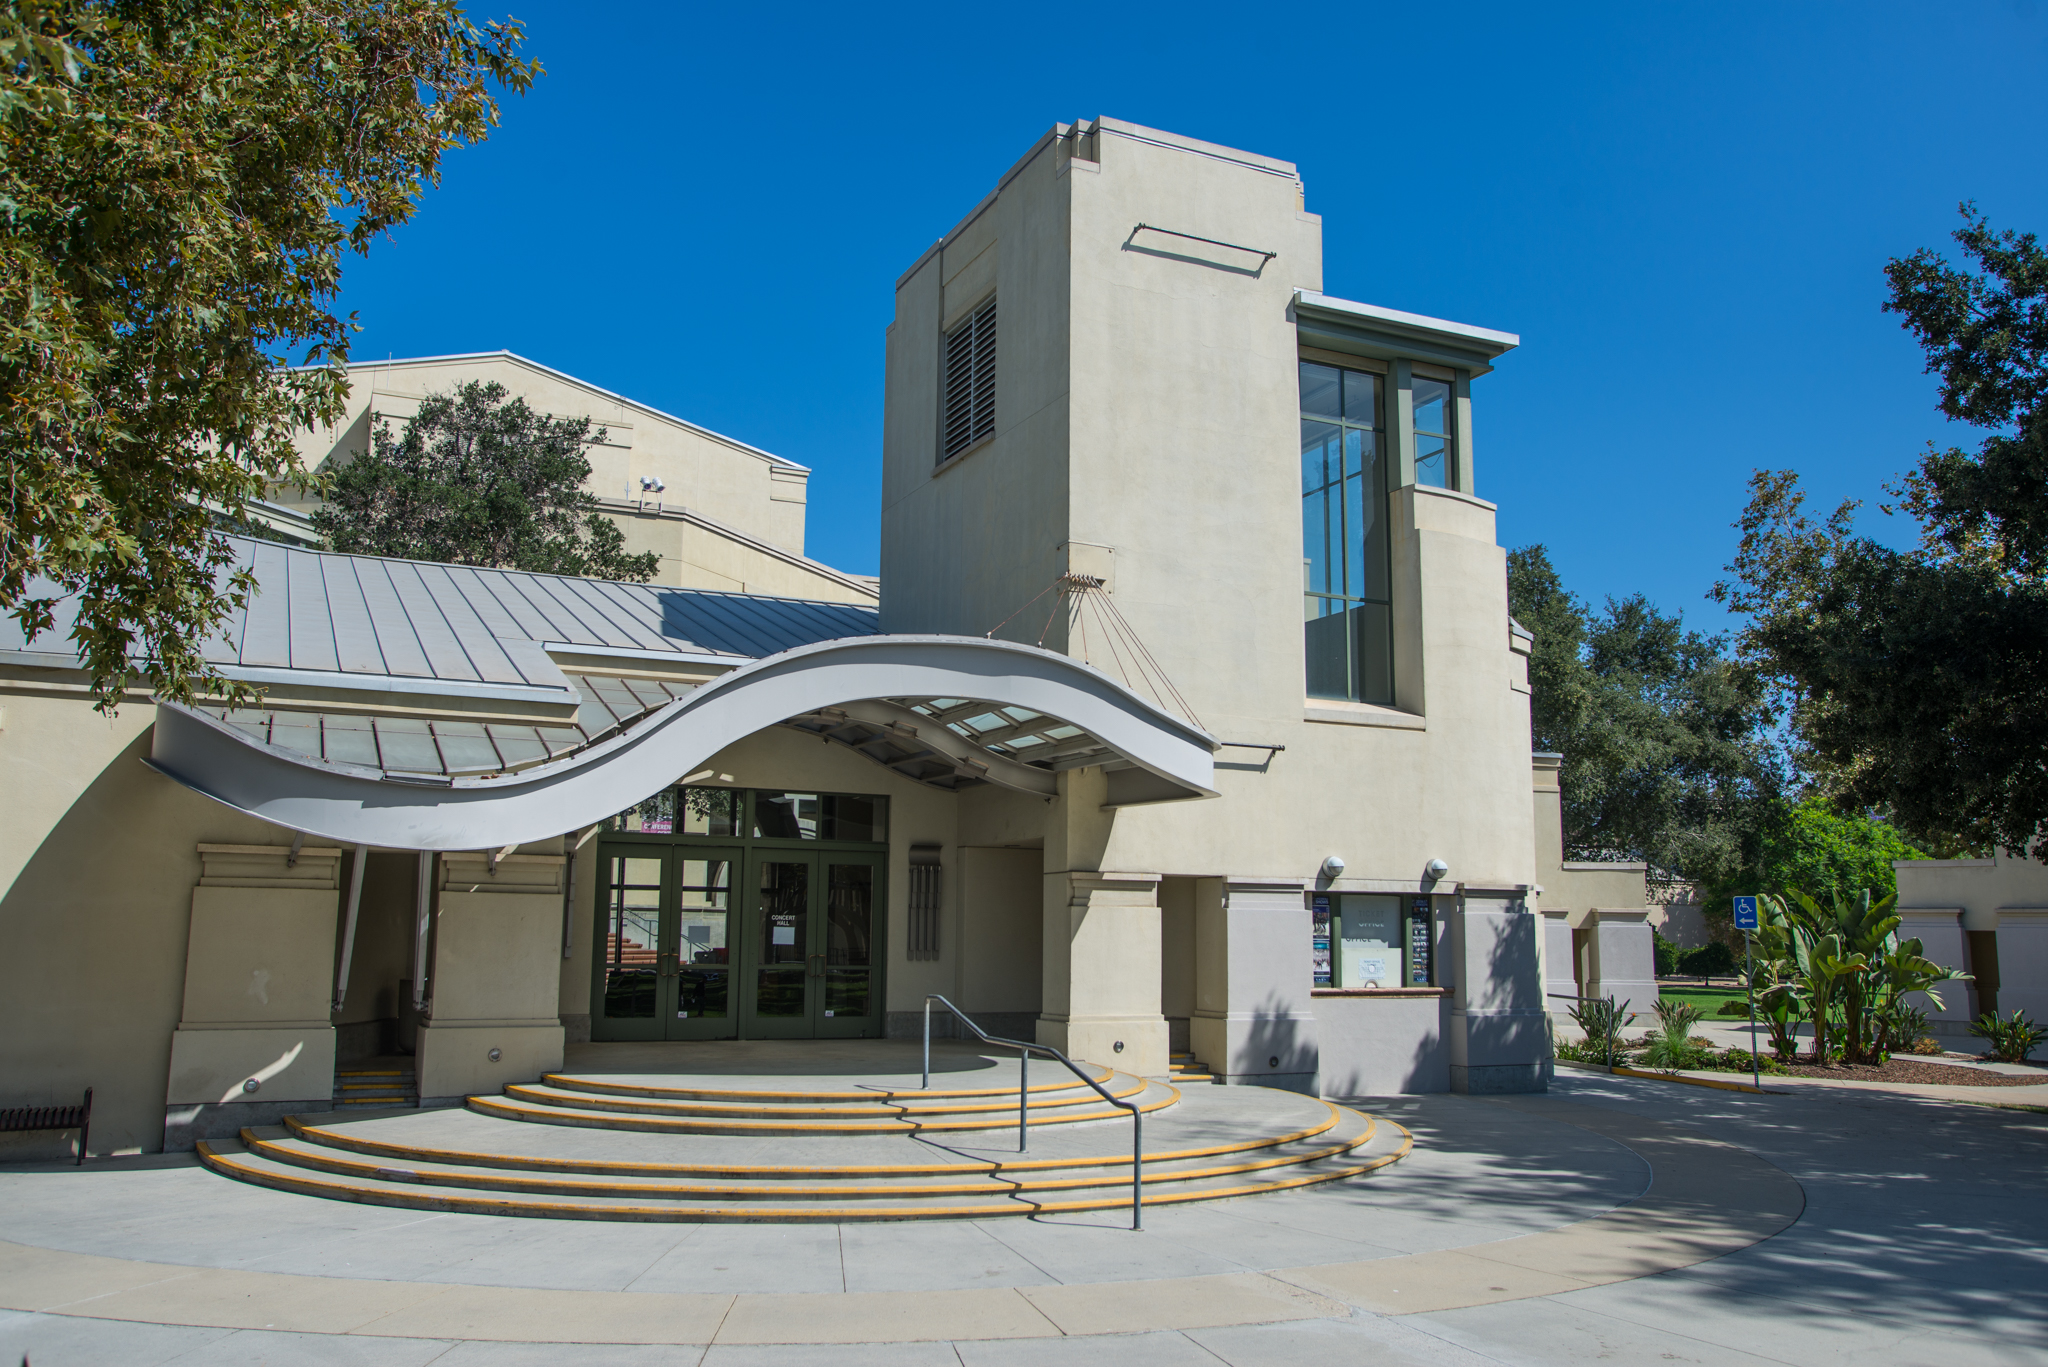 California Center for the Arts, Escondido